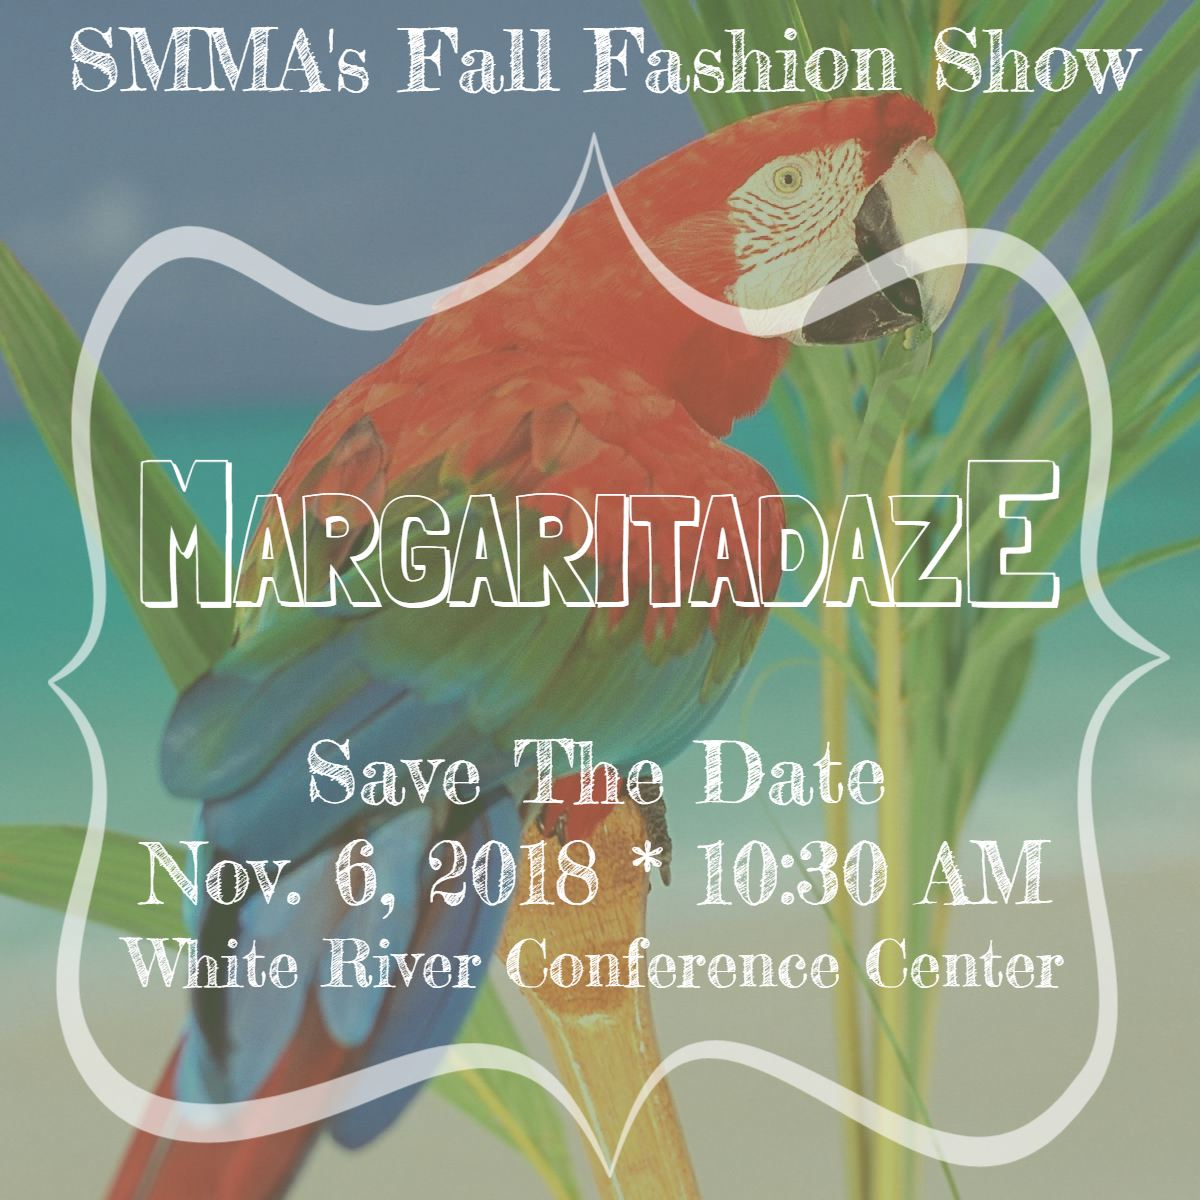 SMMA 2018 Fall Fashion Show MargaritaDaze Save the Date featuring colorful parrot